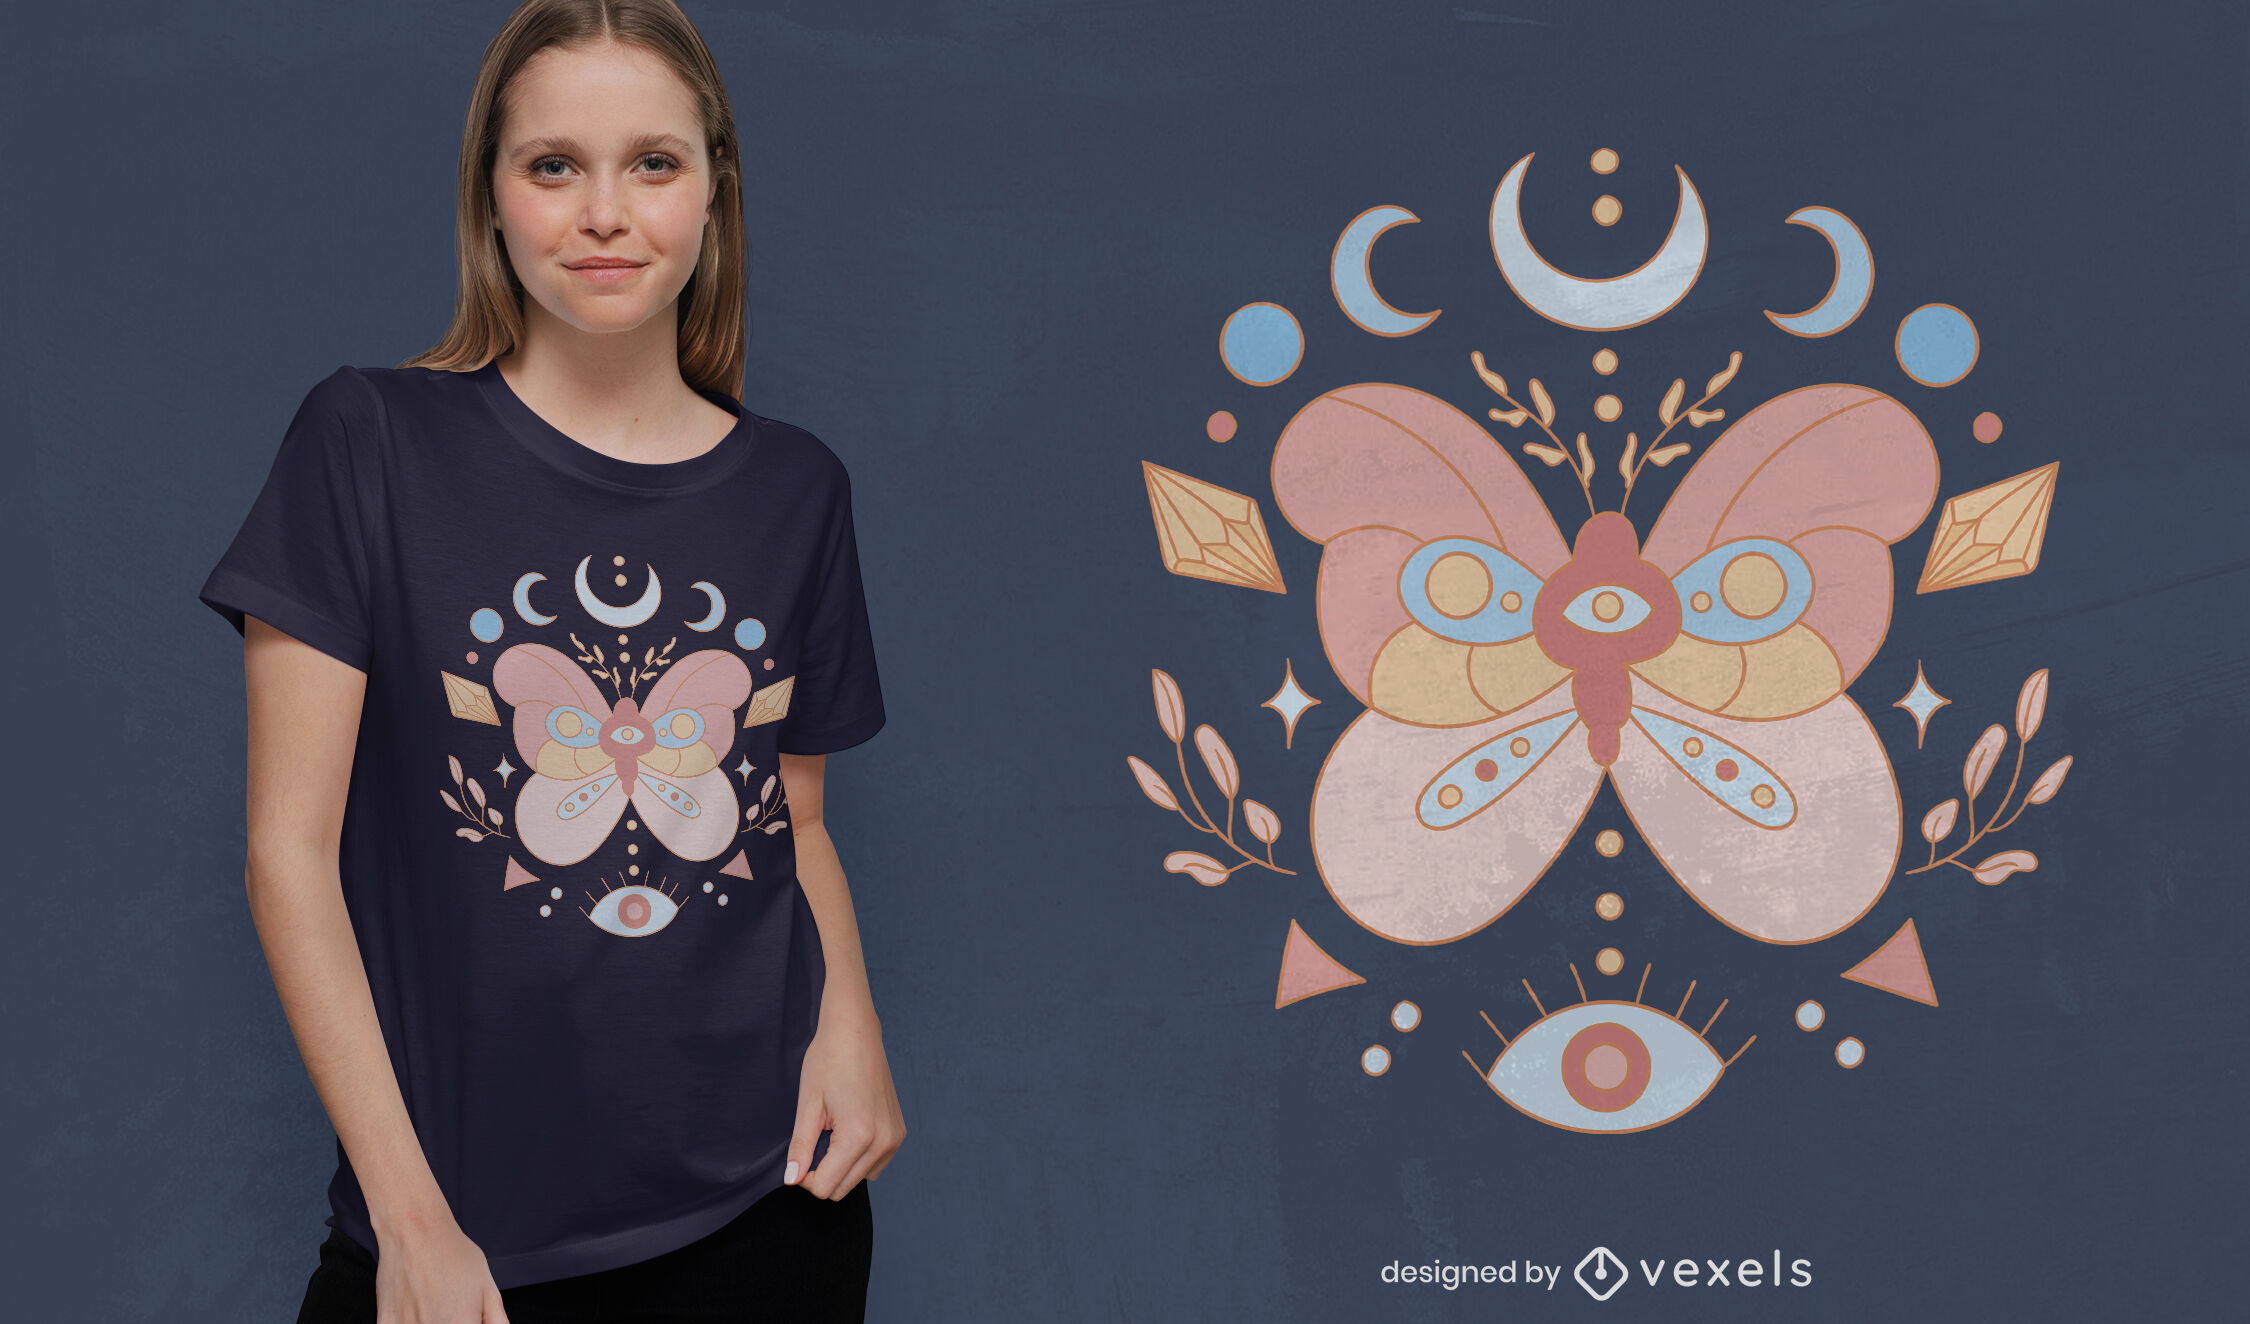 Esoteric butterfly t-shirt design